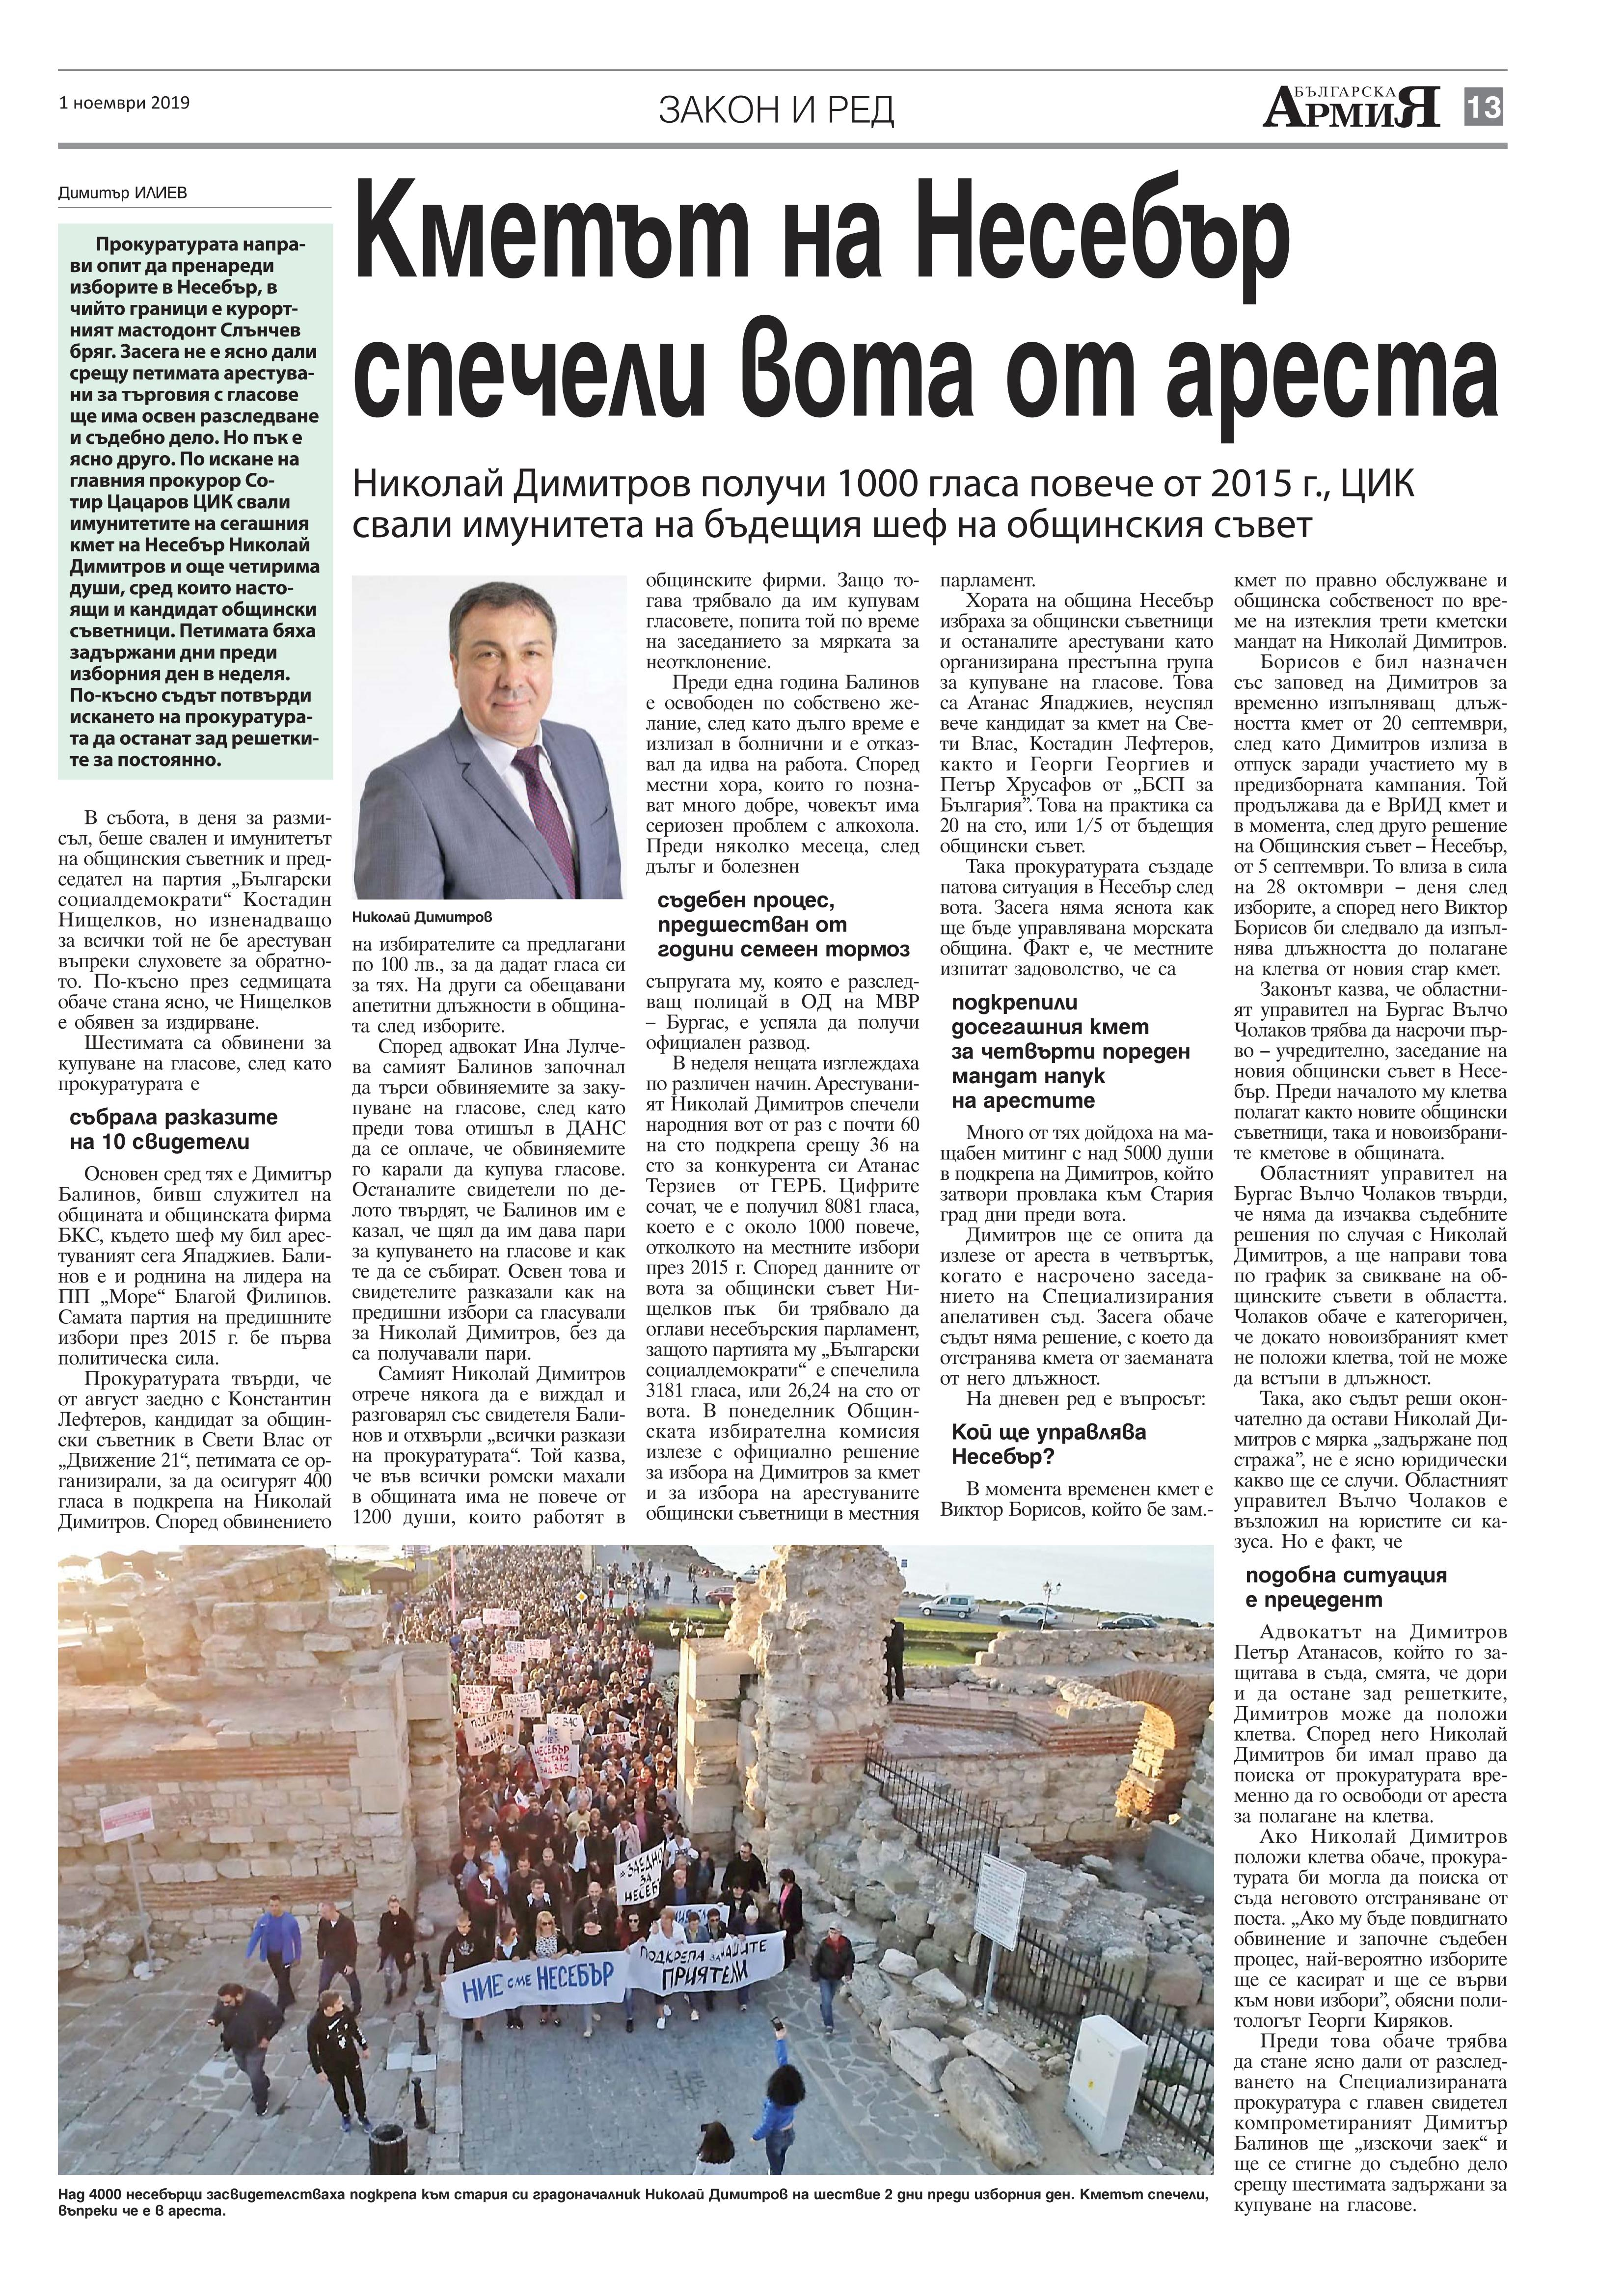 https://www.armymedia.bg/wp-content/uploads/2015/06/13.page1_-114.jpg